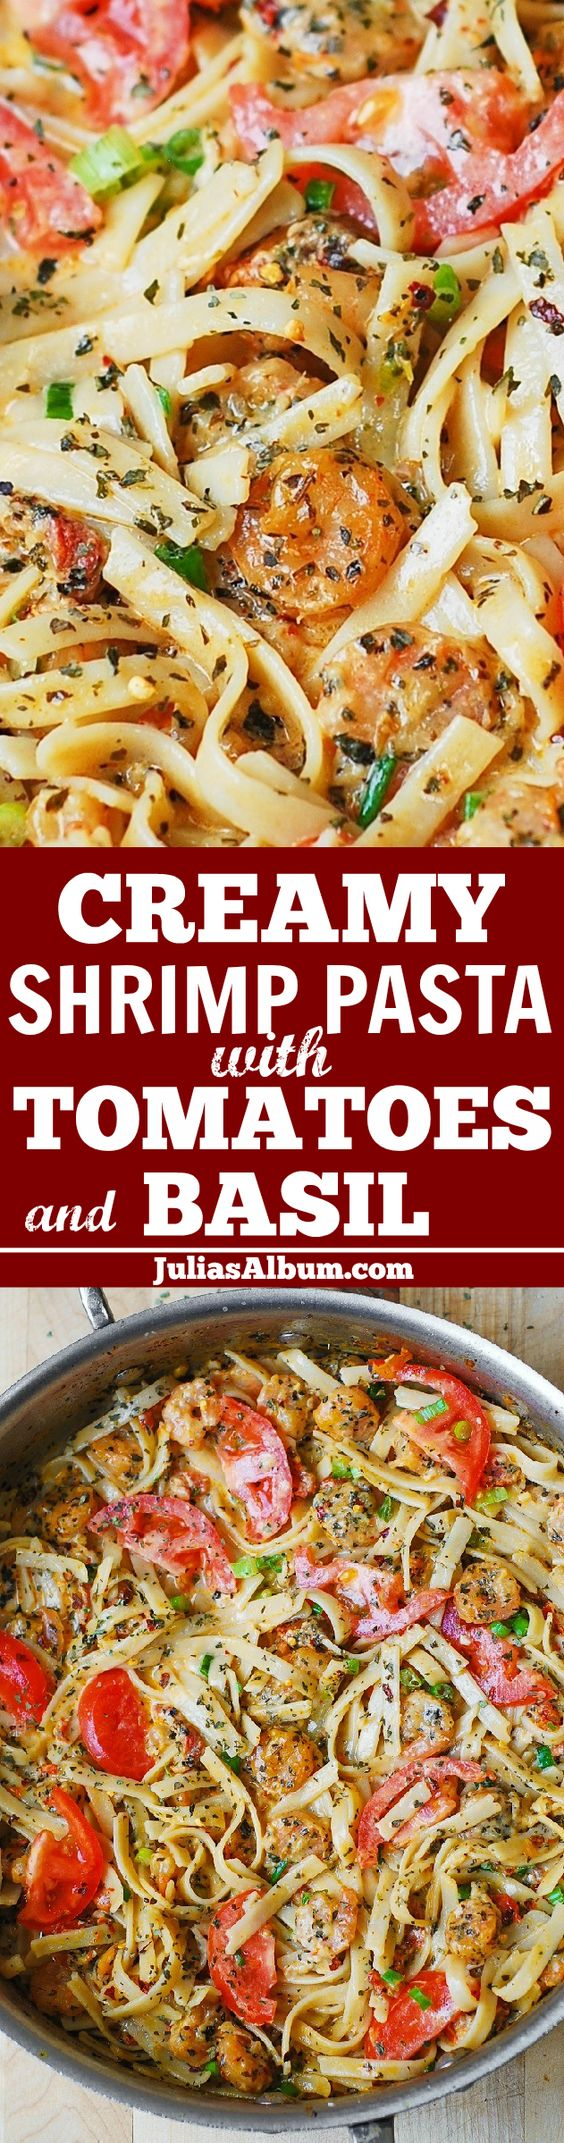 Radiatori With Tomato-Cream Sauce And Fresh Basil Recipe — Dishmaps